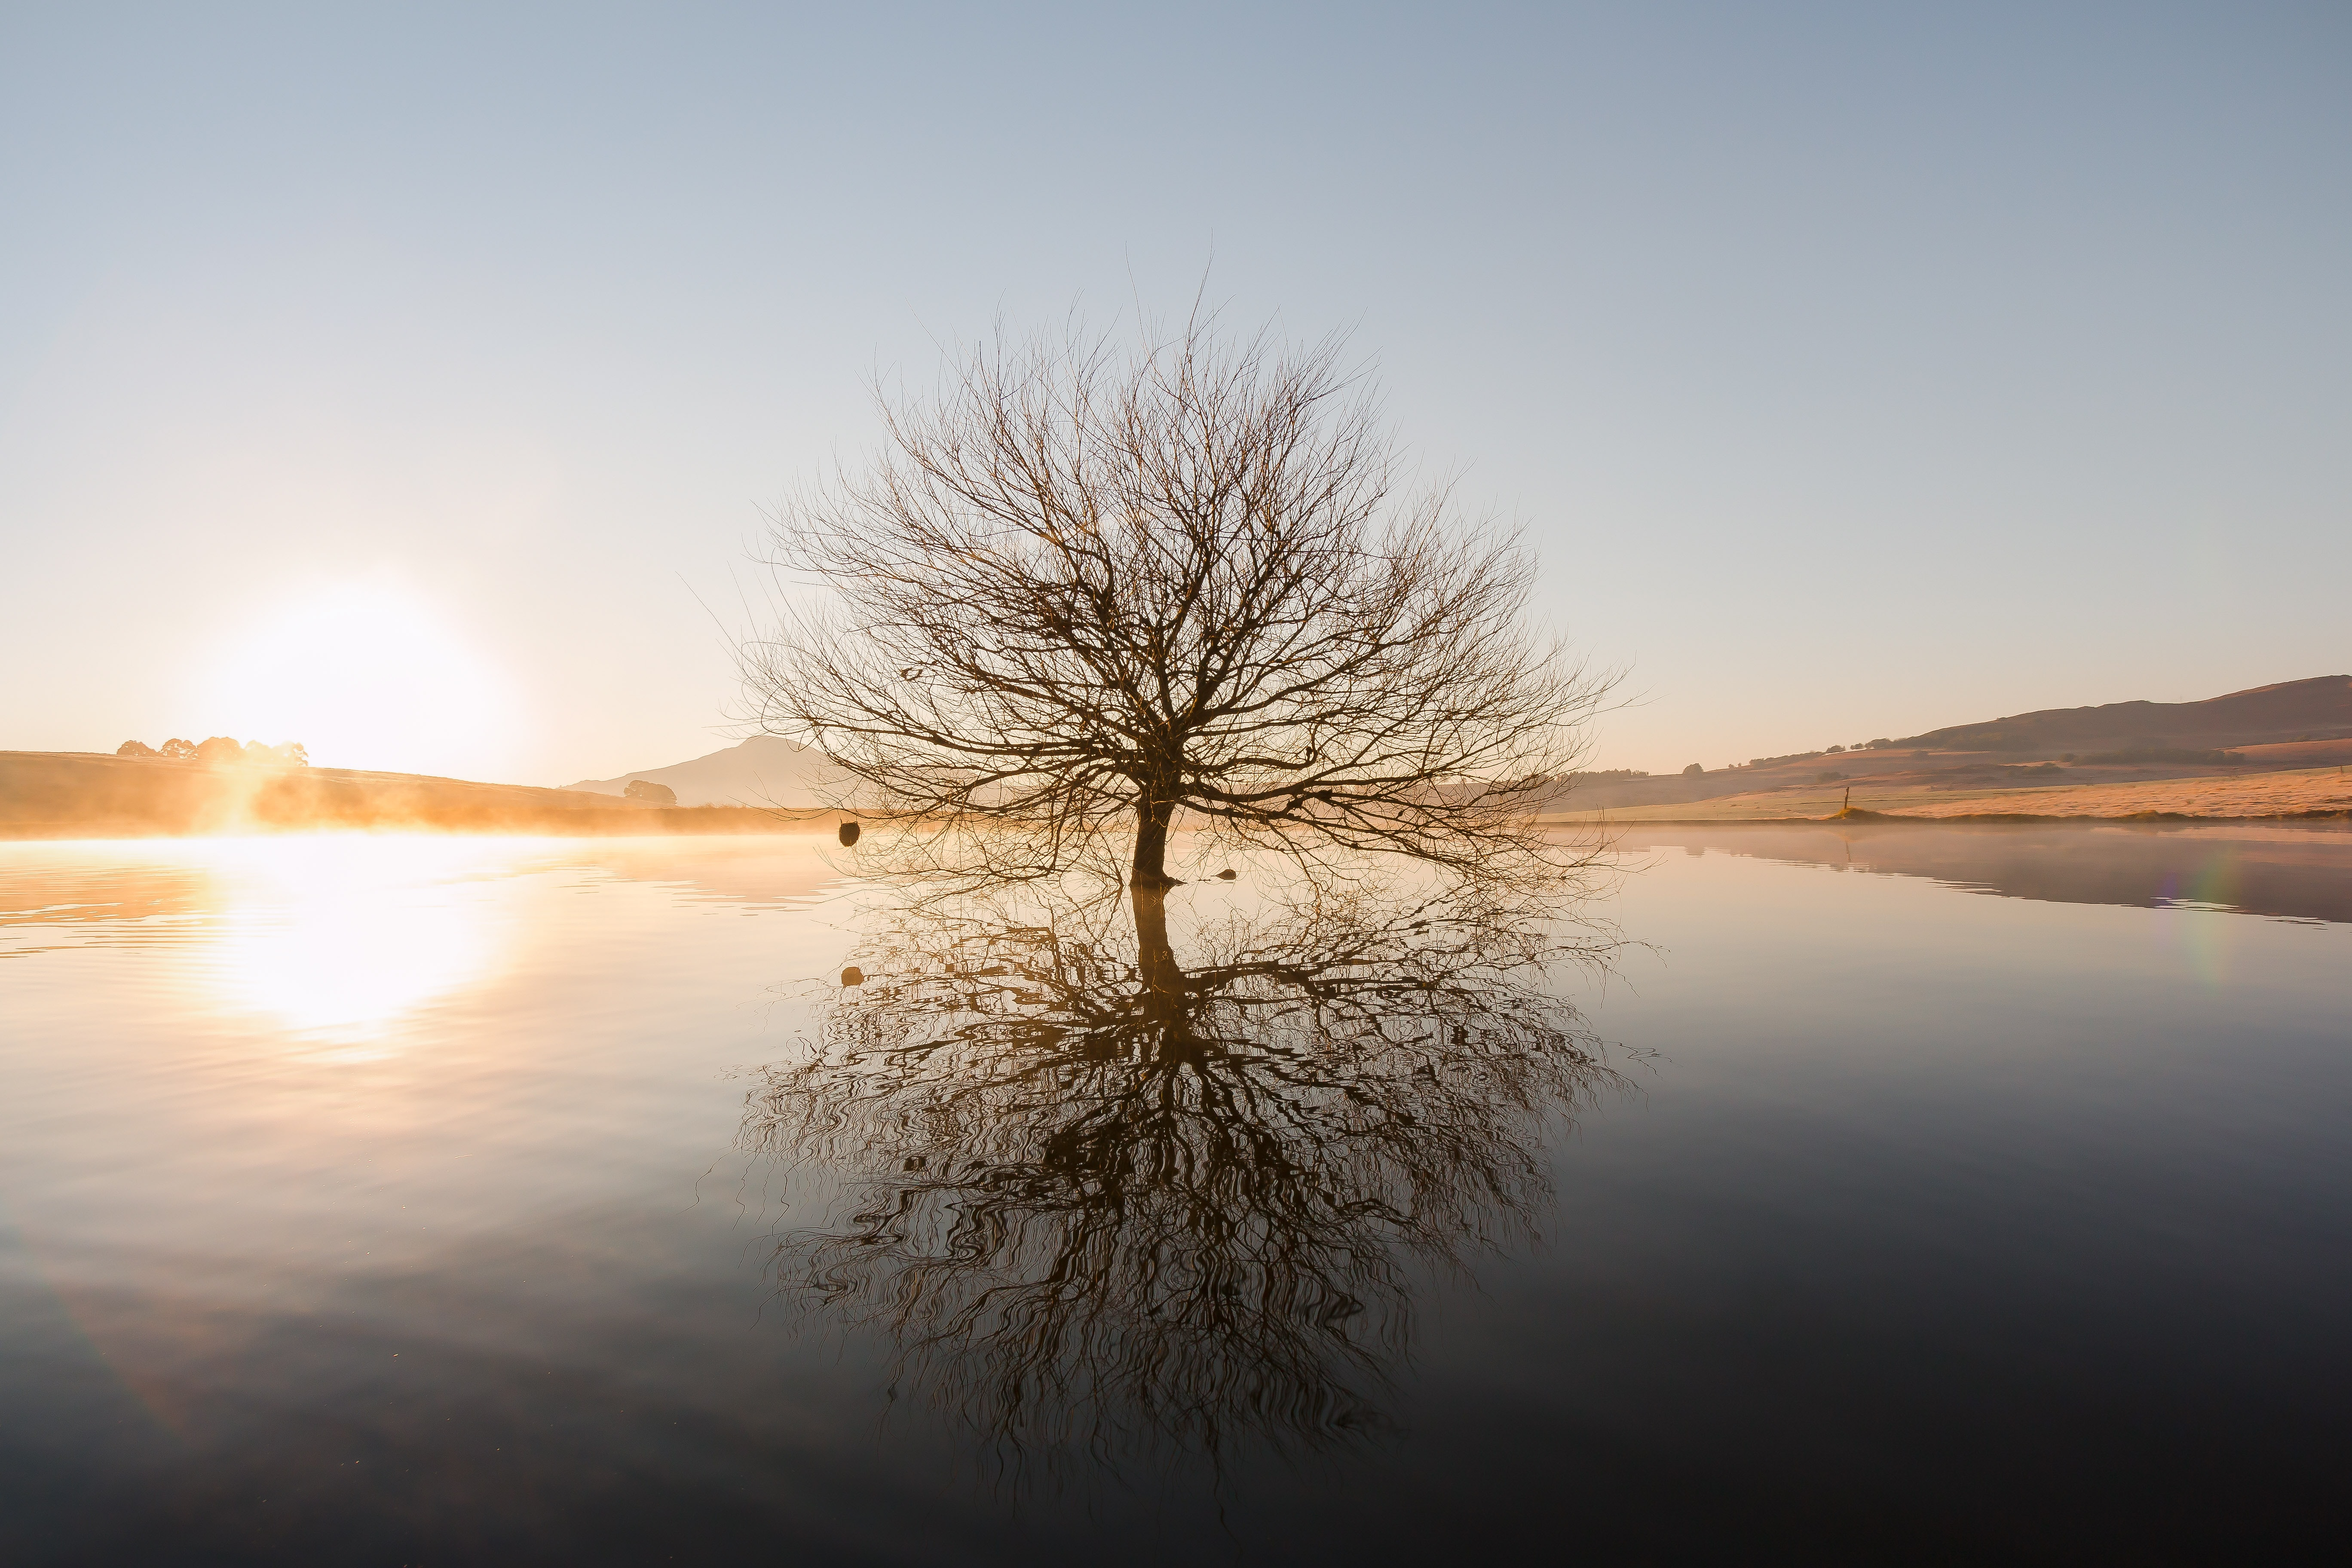 silhouette of withered tree in the middle of water